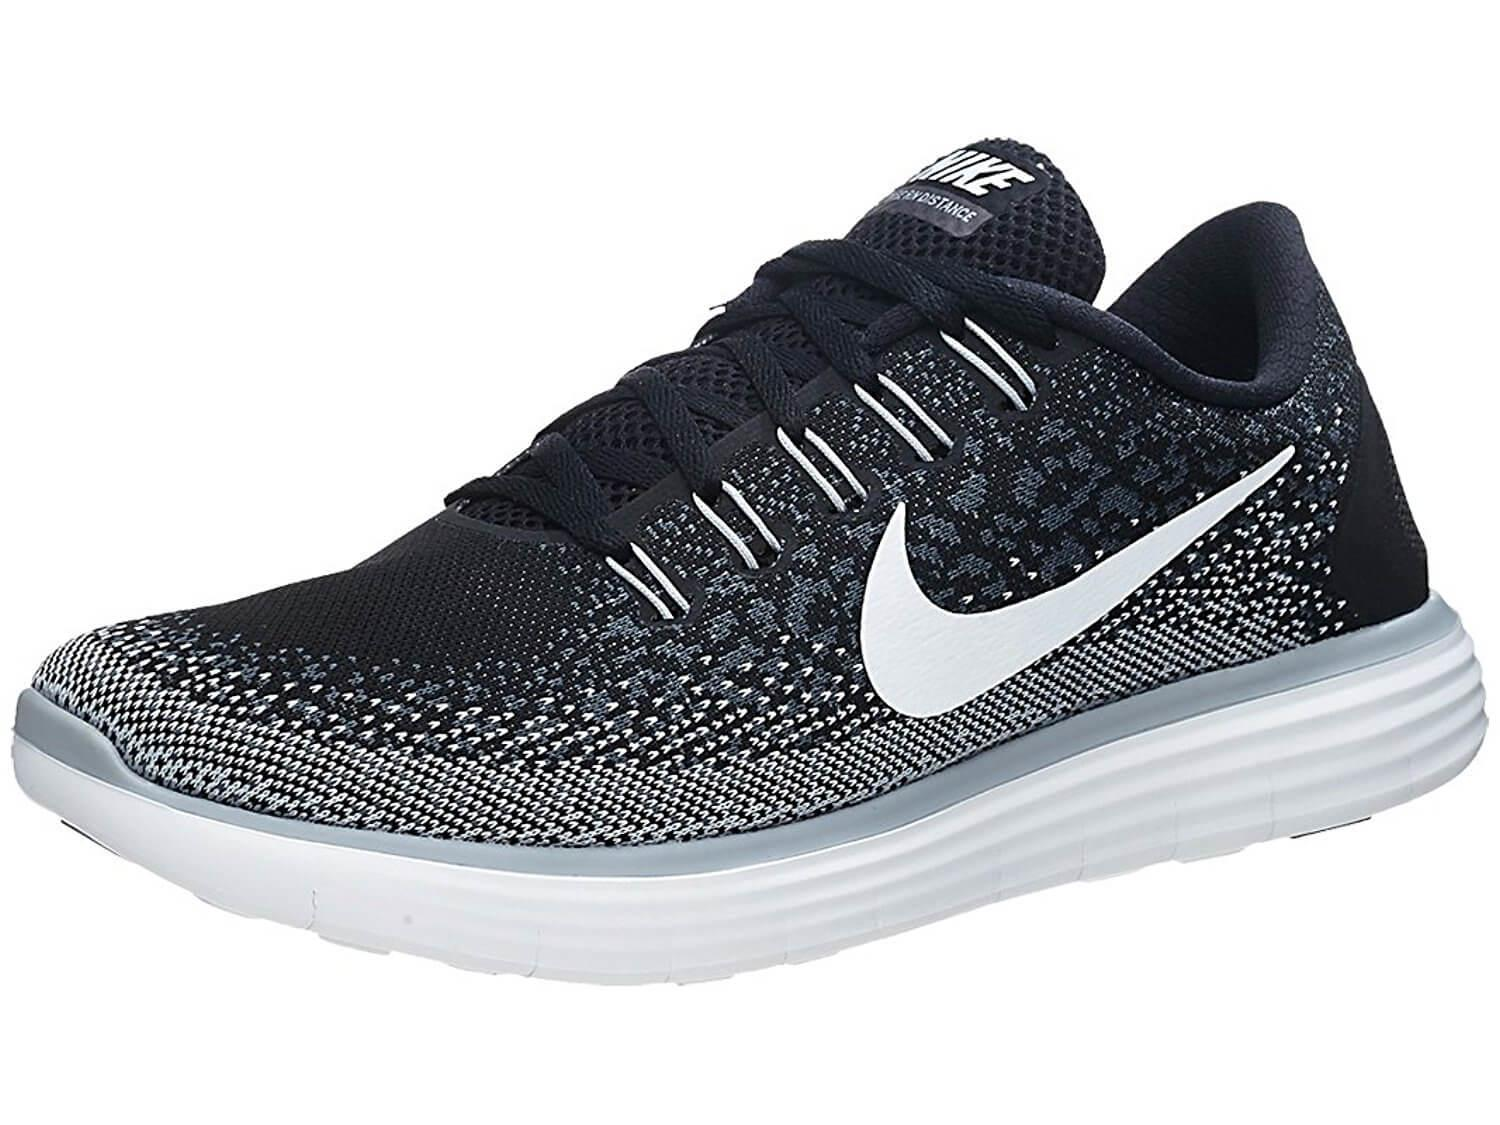 8c0f345e11d06c The Nike Free RN Distance is an excellent all-around running shoe.